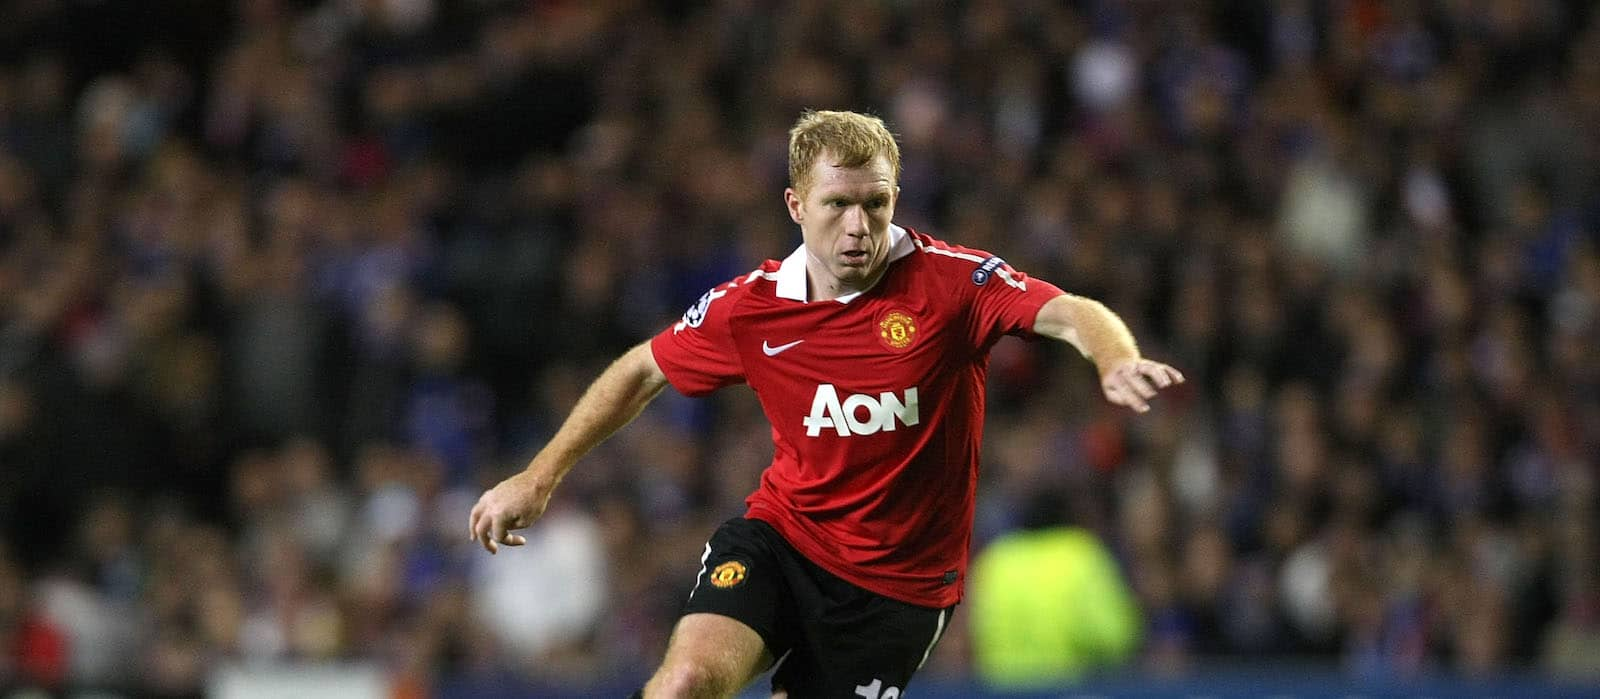 Paul Scholes posts message of support for Ole Gunnar Solskjaer